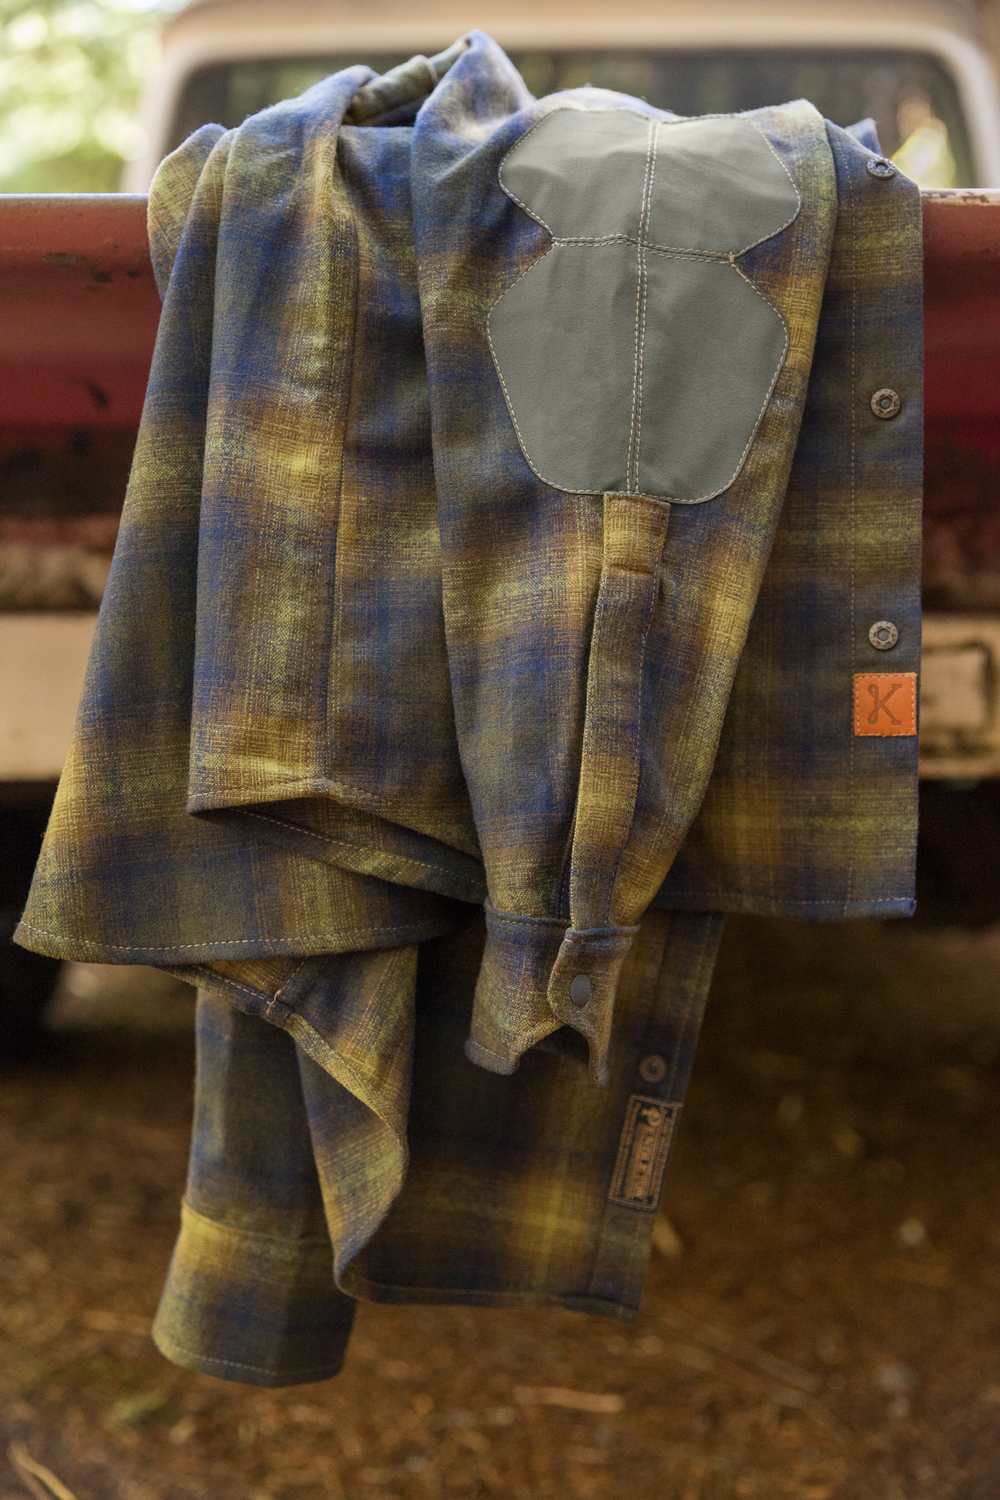 a Pendleton Kitsbow shirt draped over the side of a vintage pickup truck